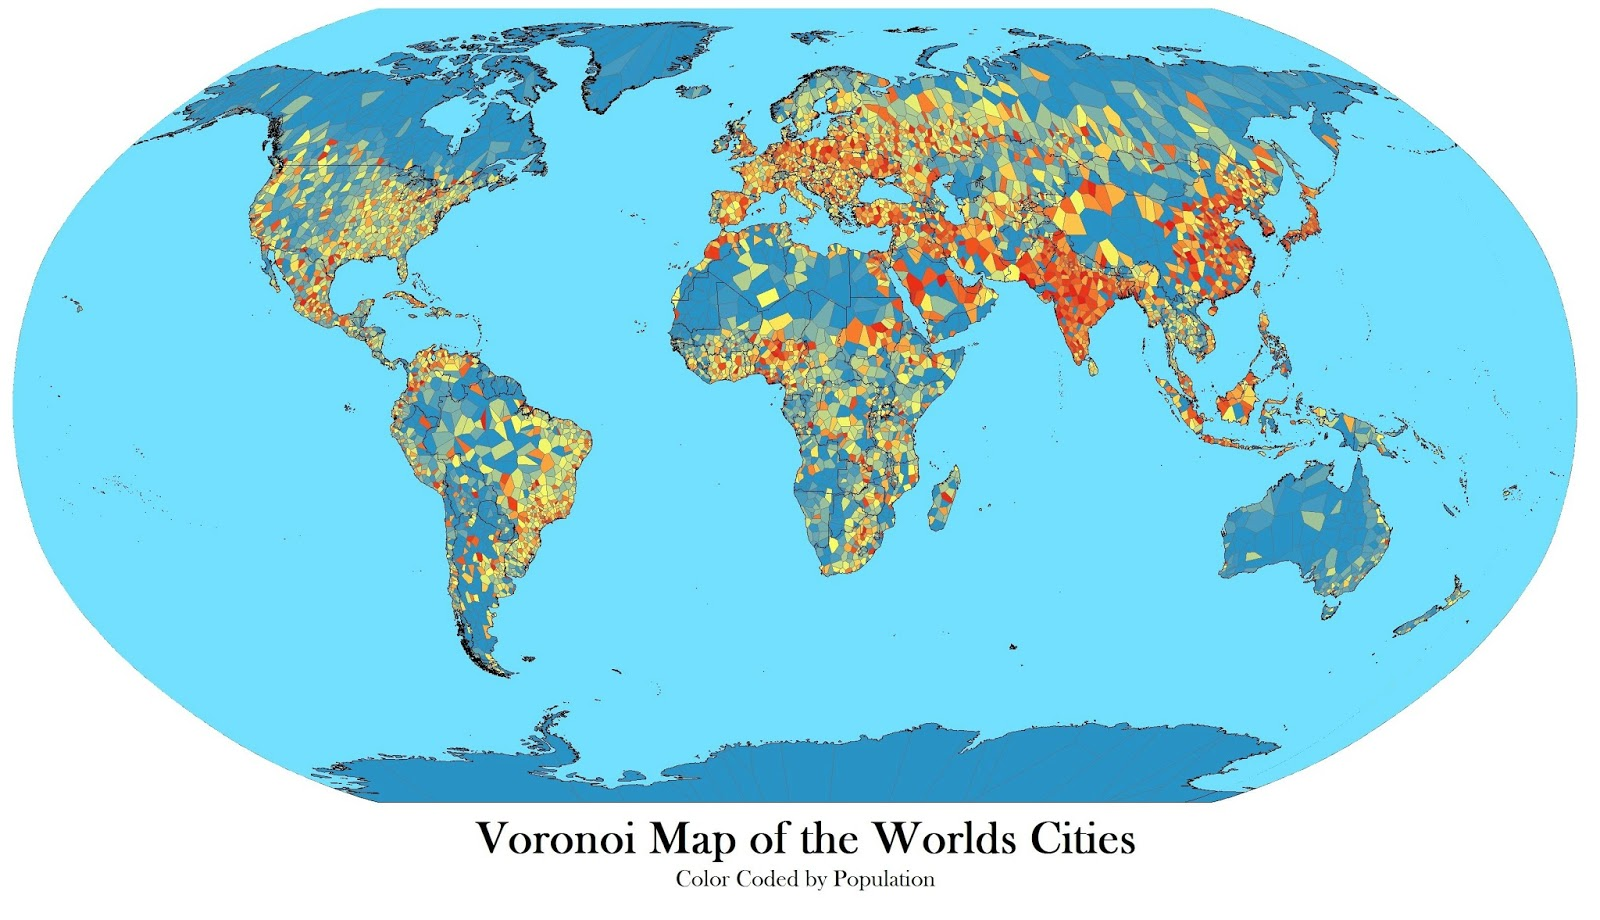 Voronoi map of the worlds cities with population rank